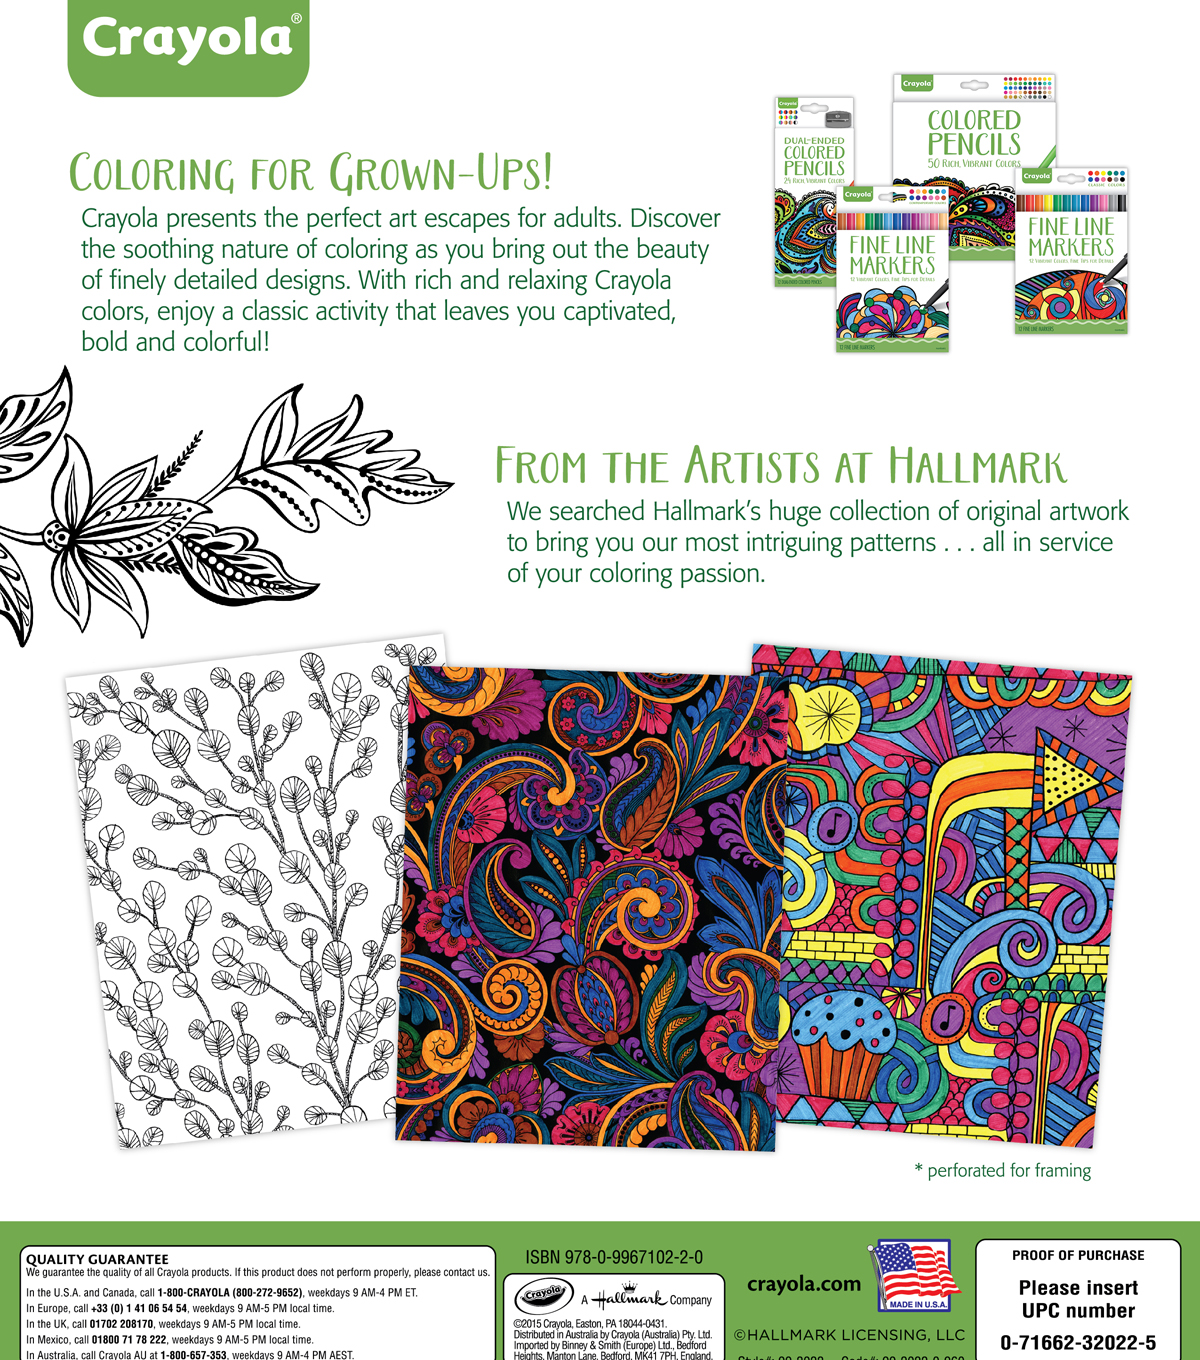 Crayola Patterned Escapes Coloring Book | JOANN